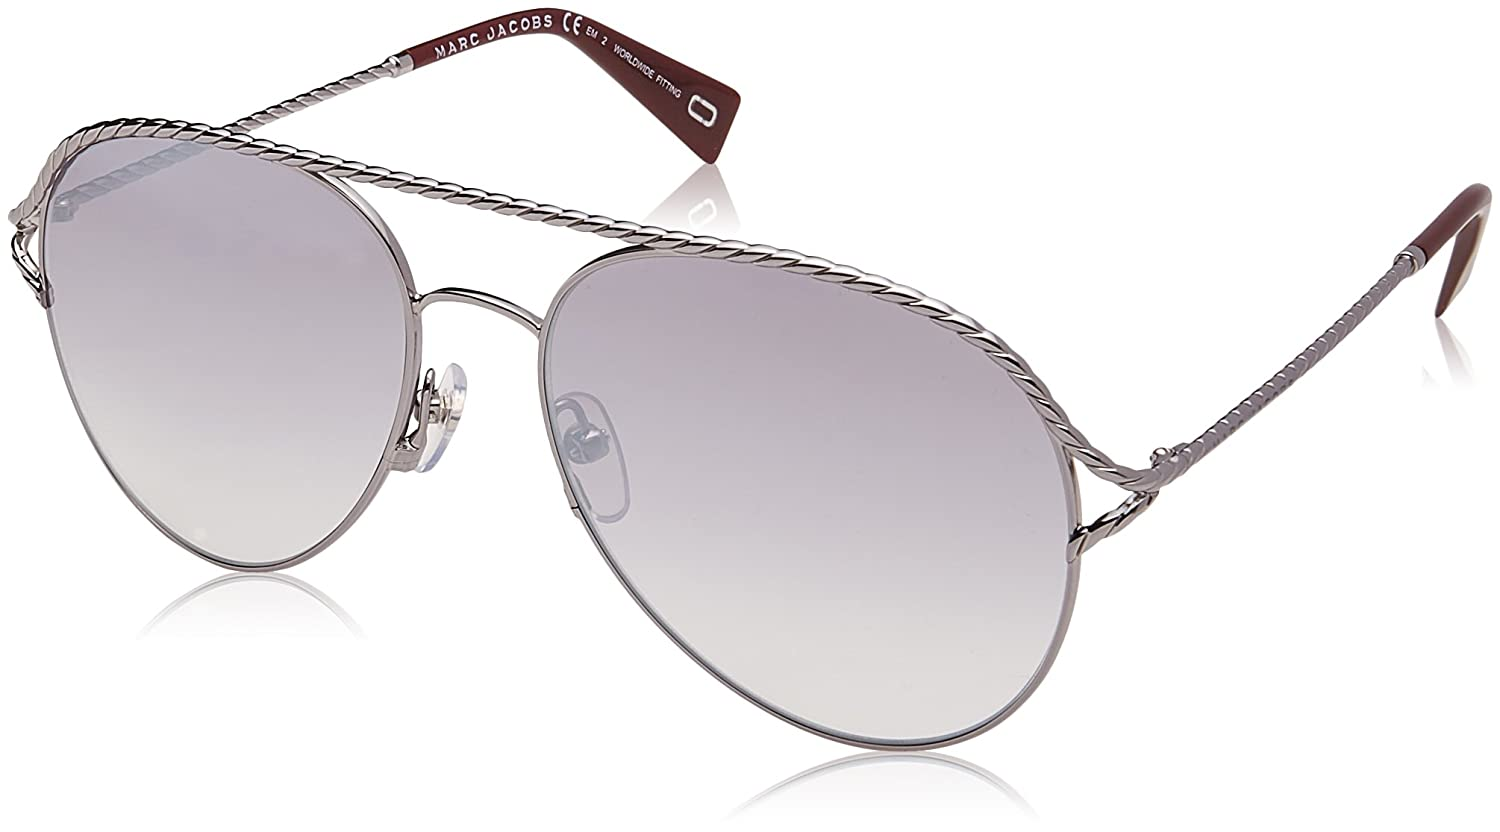 Marc Jacobs Metal Twist Aviator Sunglasses in Ruthenium Red MARC 168//S GHP 58